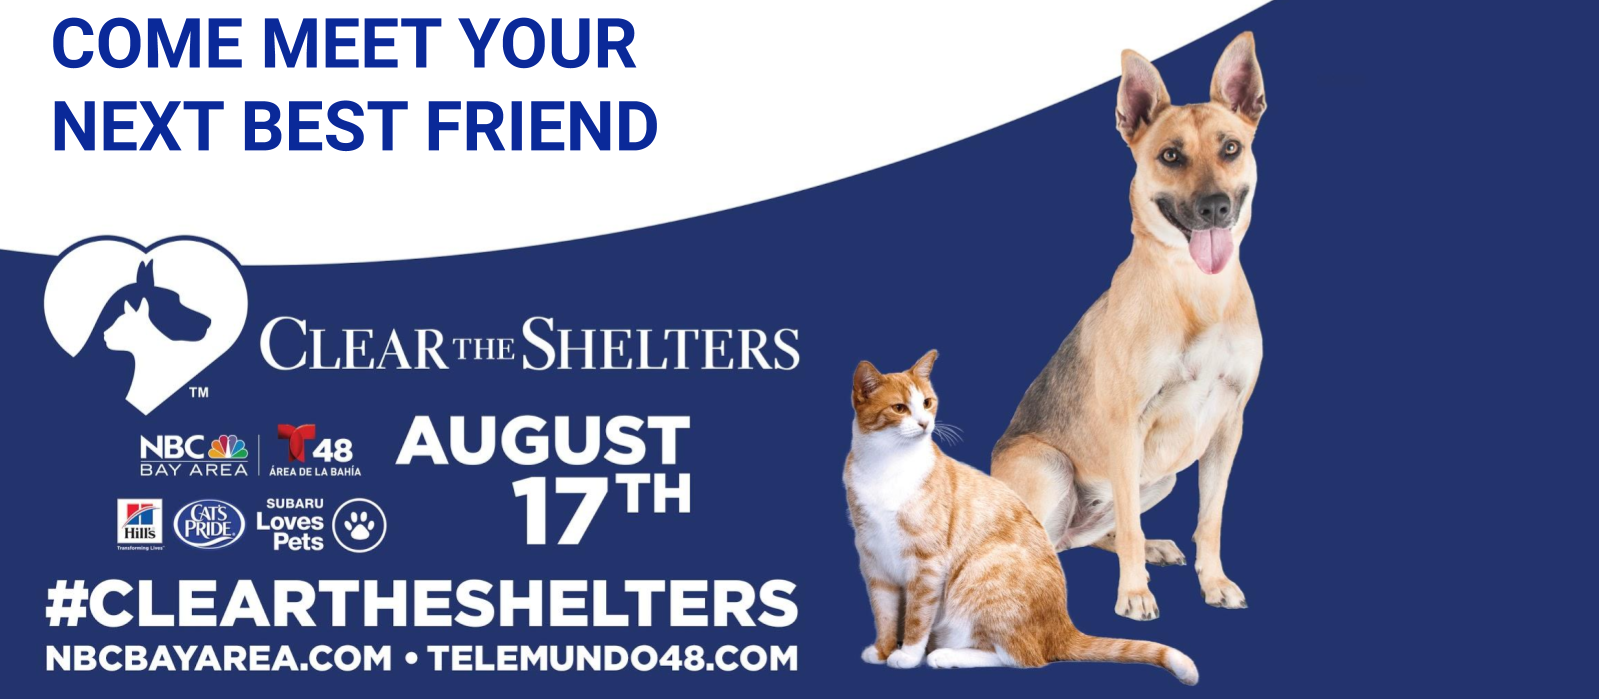 Come clear the shelter!